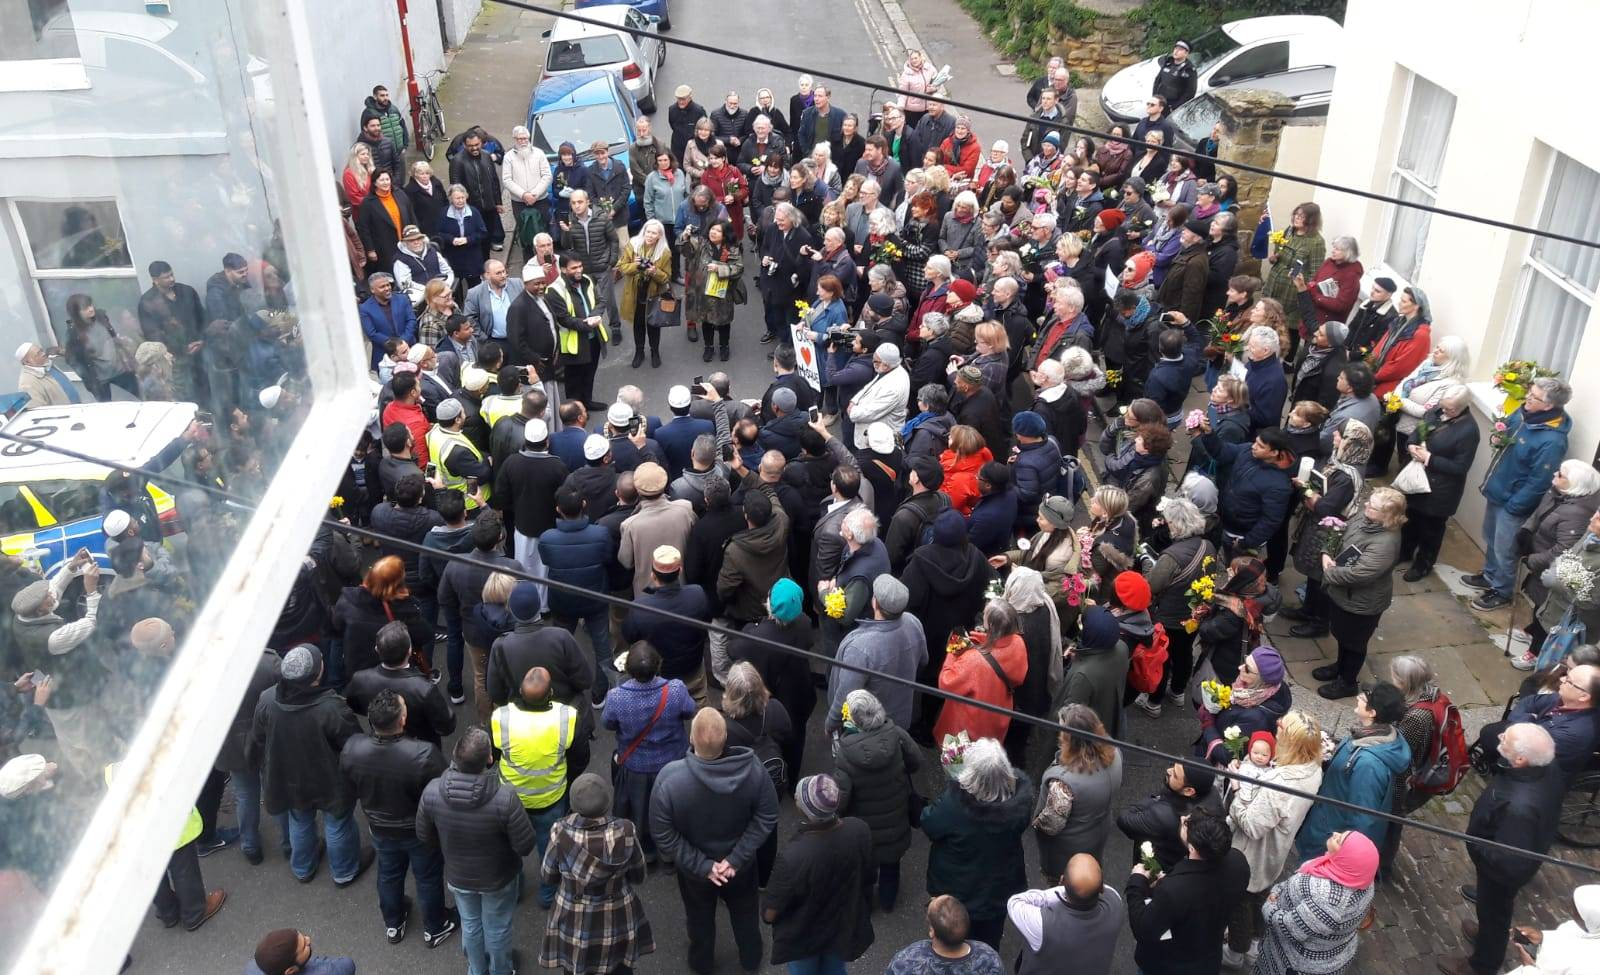 Standing side by side – one Hastings many voices, mosque vigil is huge success